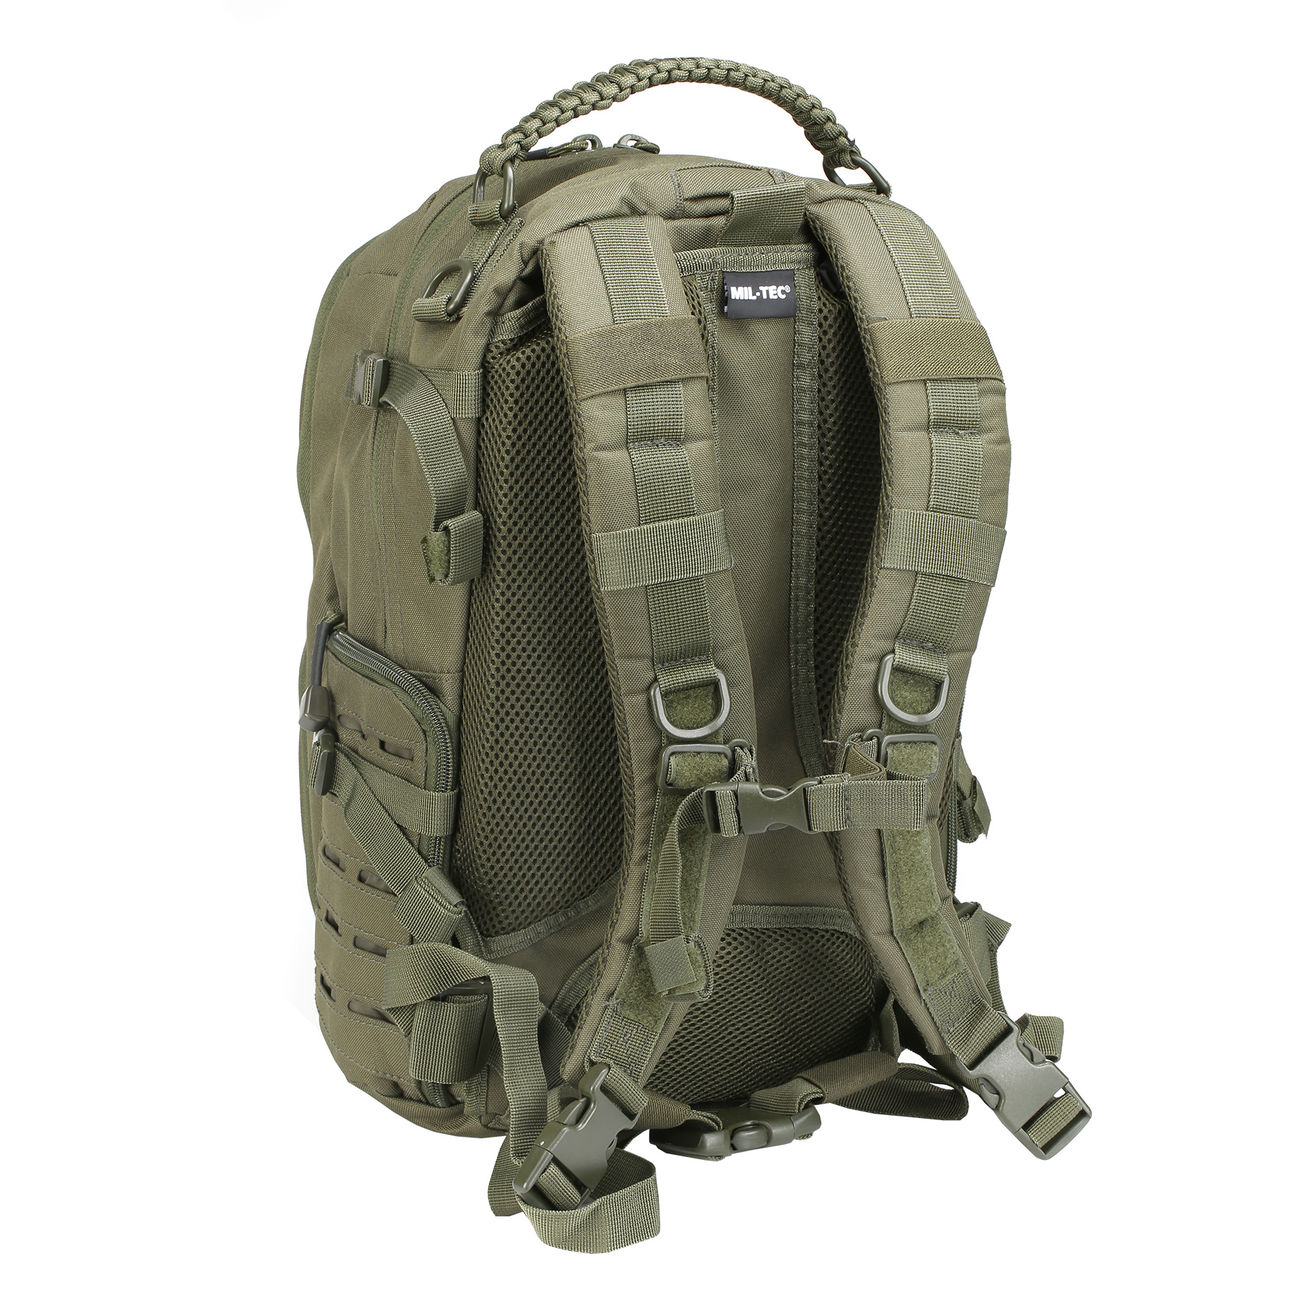 Mil-Tec Rucksack Mission Pack Laser Cut Small oliv 3